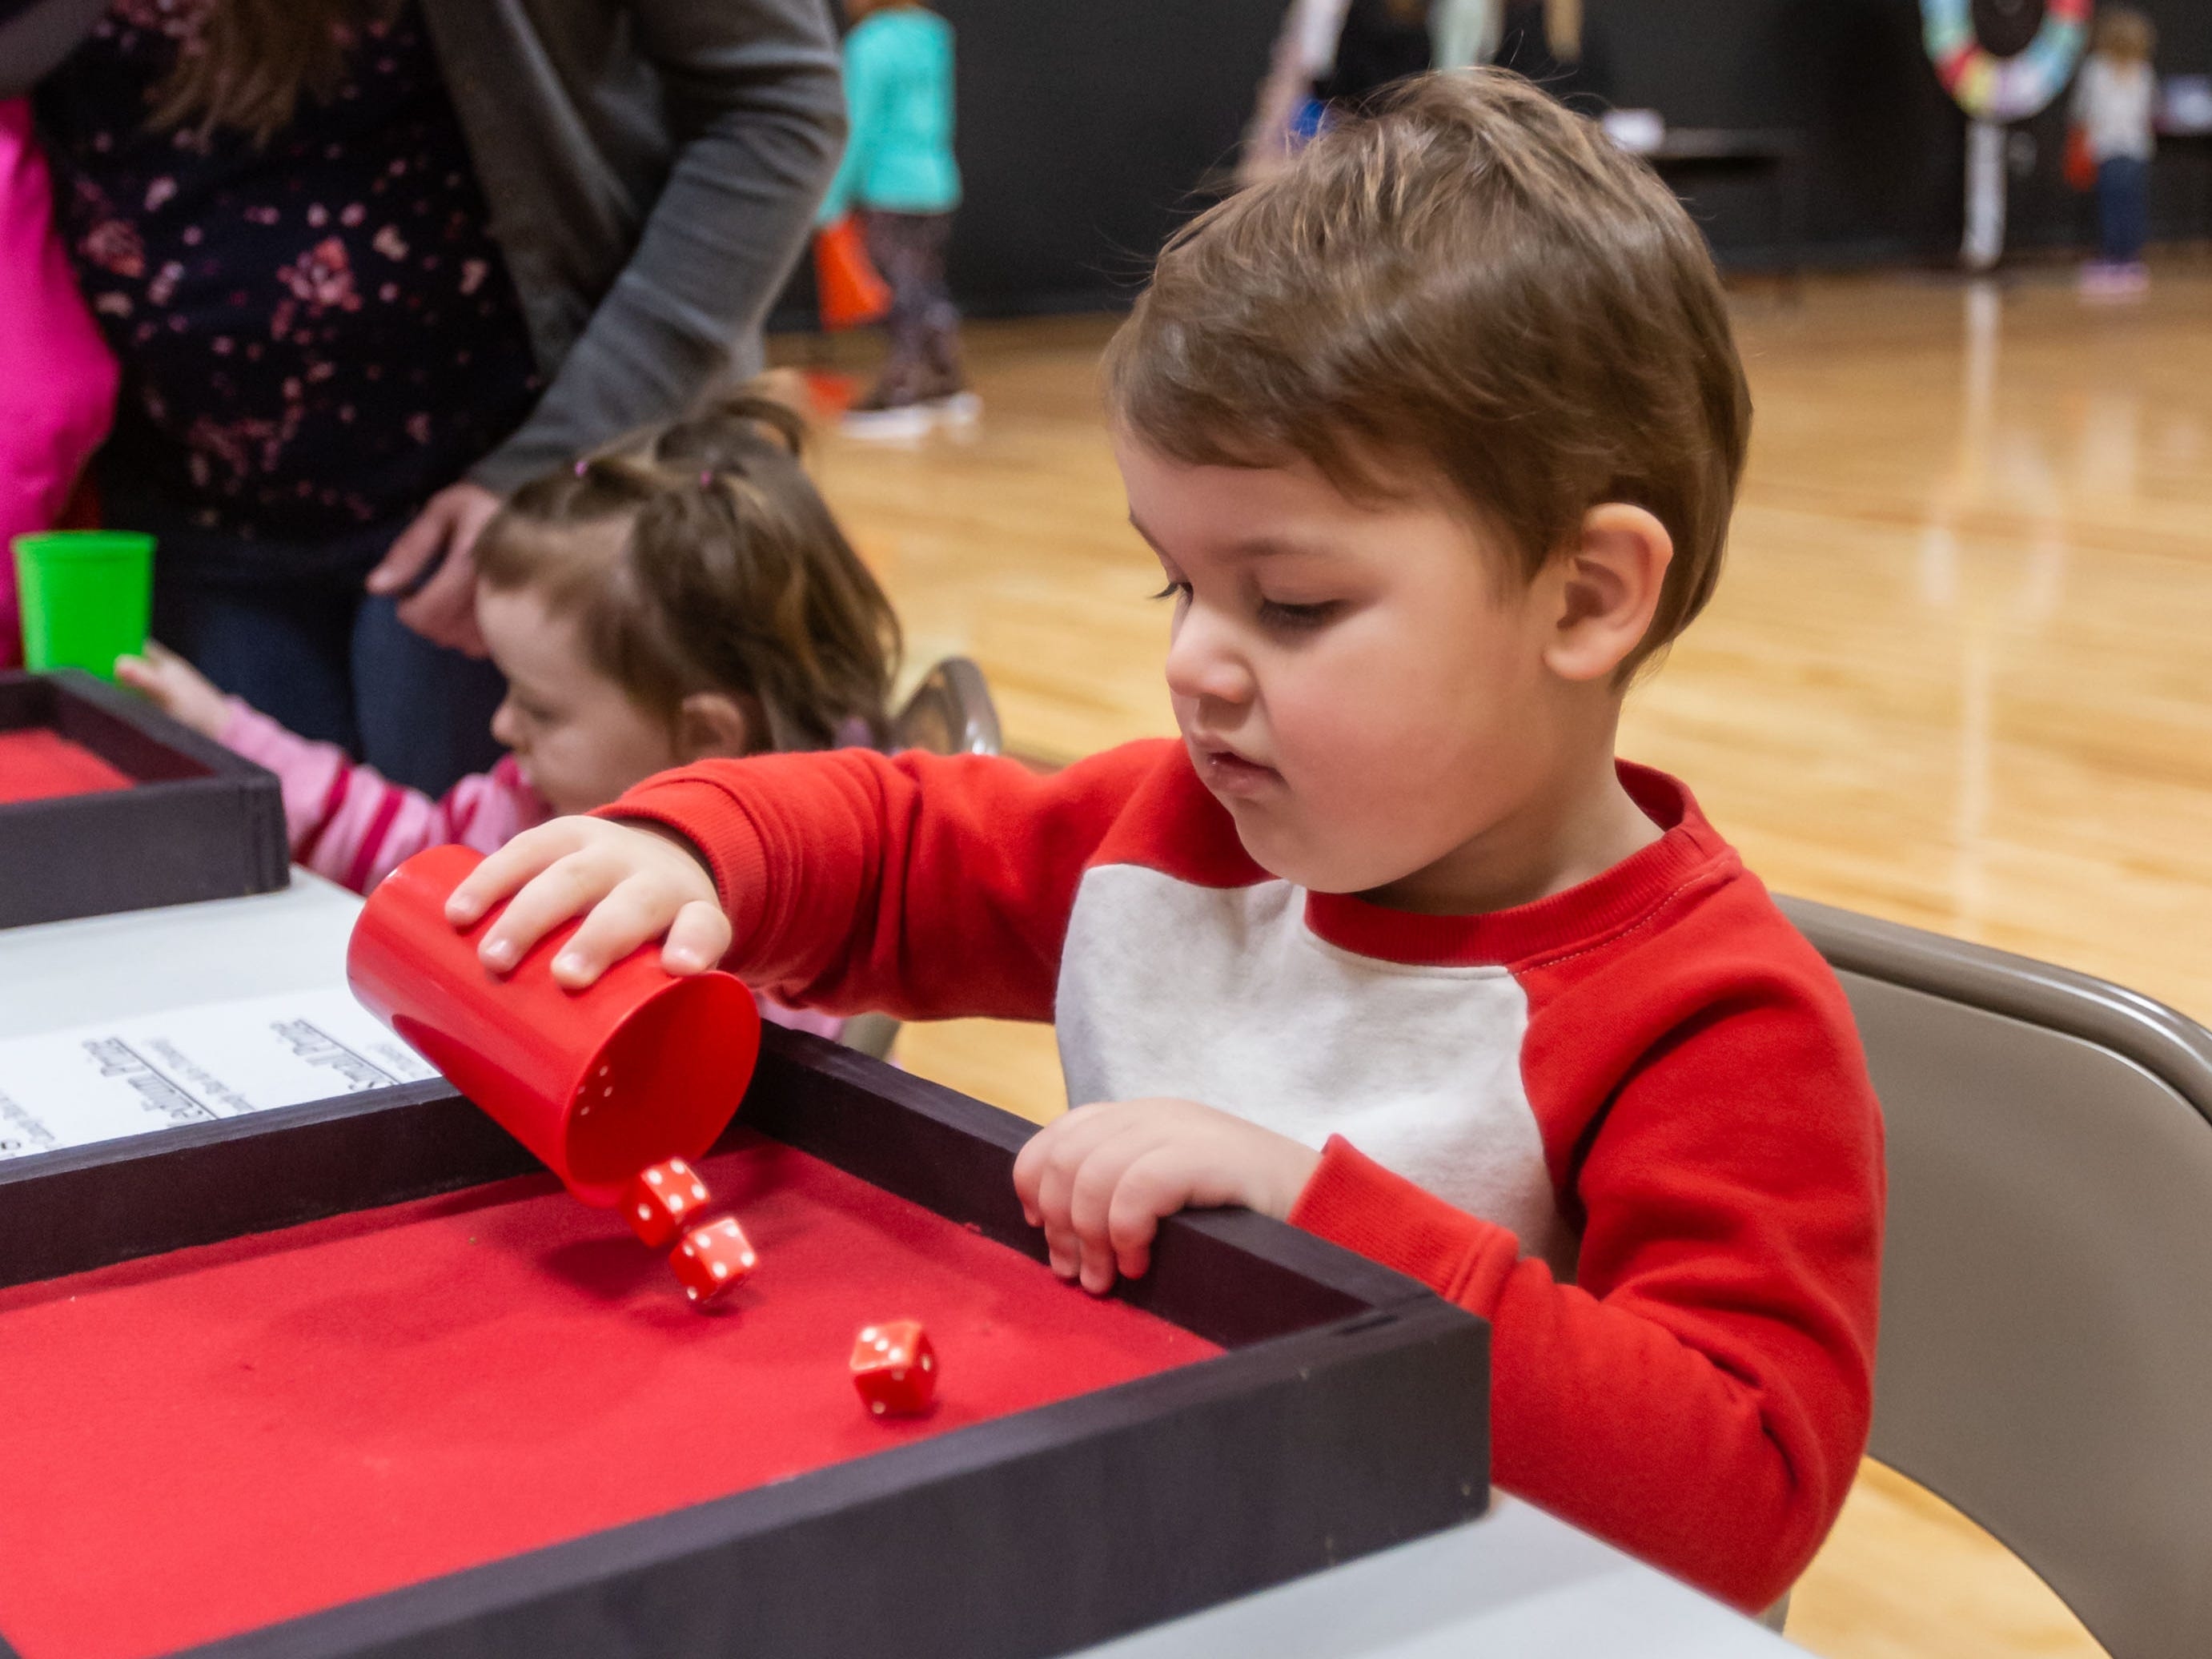 Two-year-old Charlie Scharf of Milwaukee plays a game during the Winter Carnival at St. Matthew's Lutheran School in Oconomowoc on Saturday, March 9, 2019. The event featured a huge prize booth, games, food, a silent auction and more. Proceeds from the Winter Carnival will be used to purchase non budgeted school items.